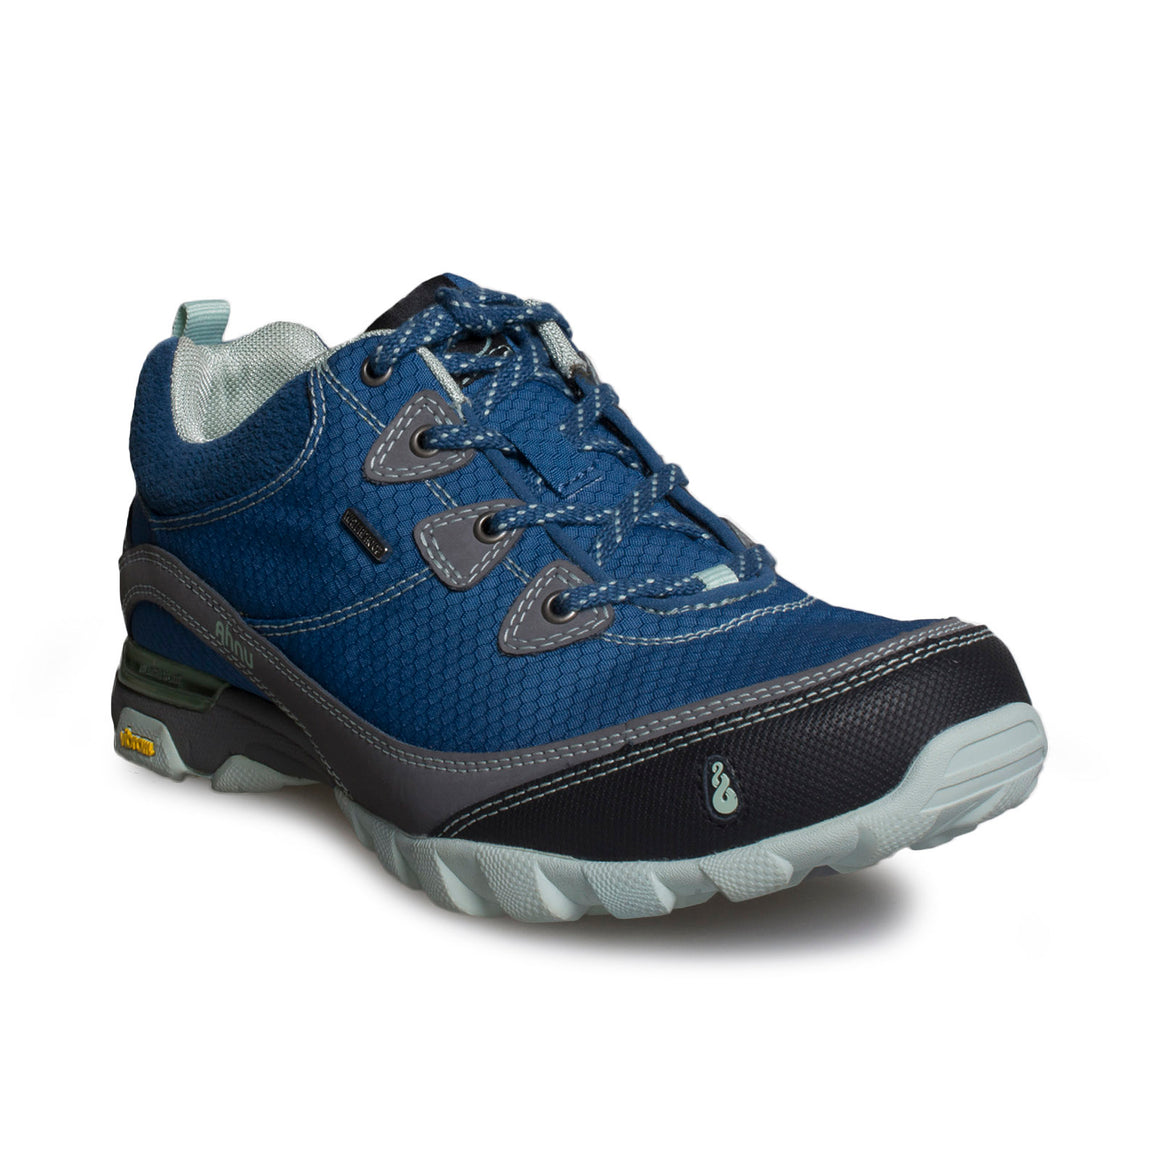 Ahnu Sugarpine Air Mesh Dark Blue Shoes - Women's